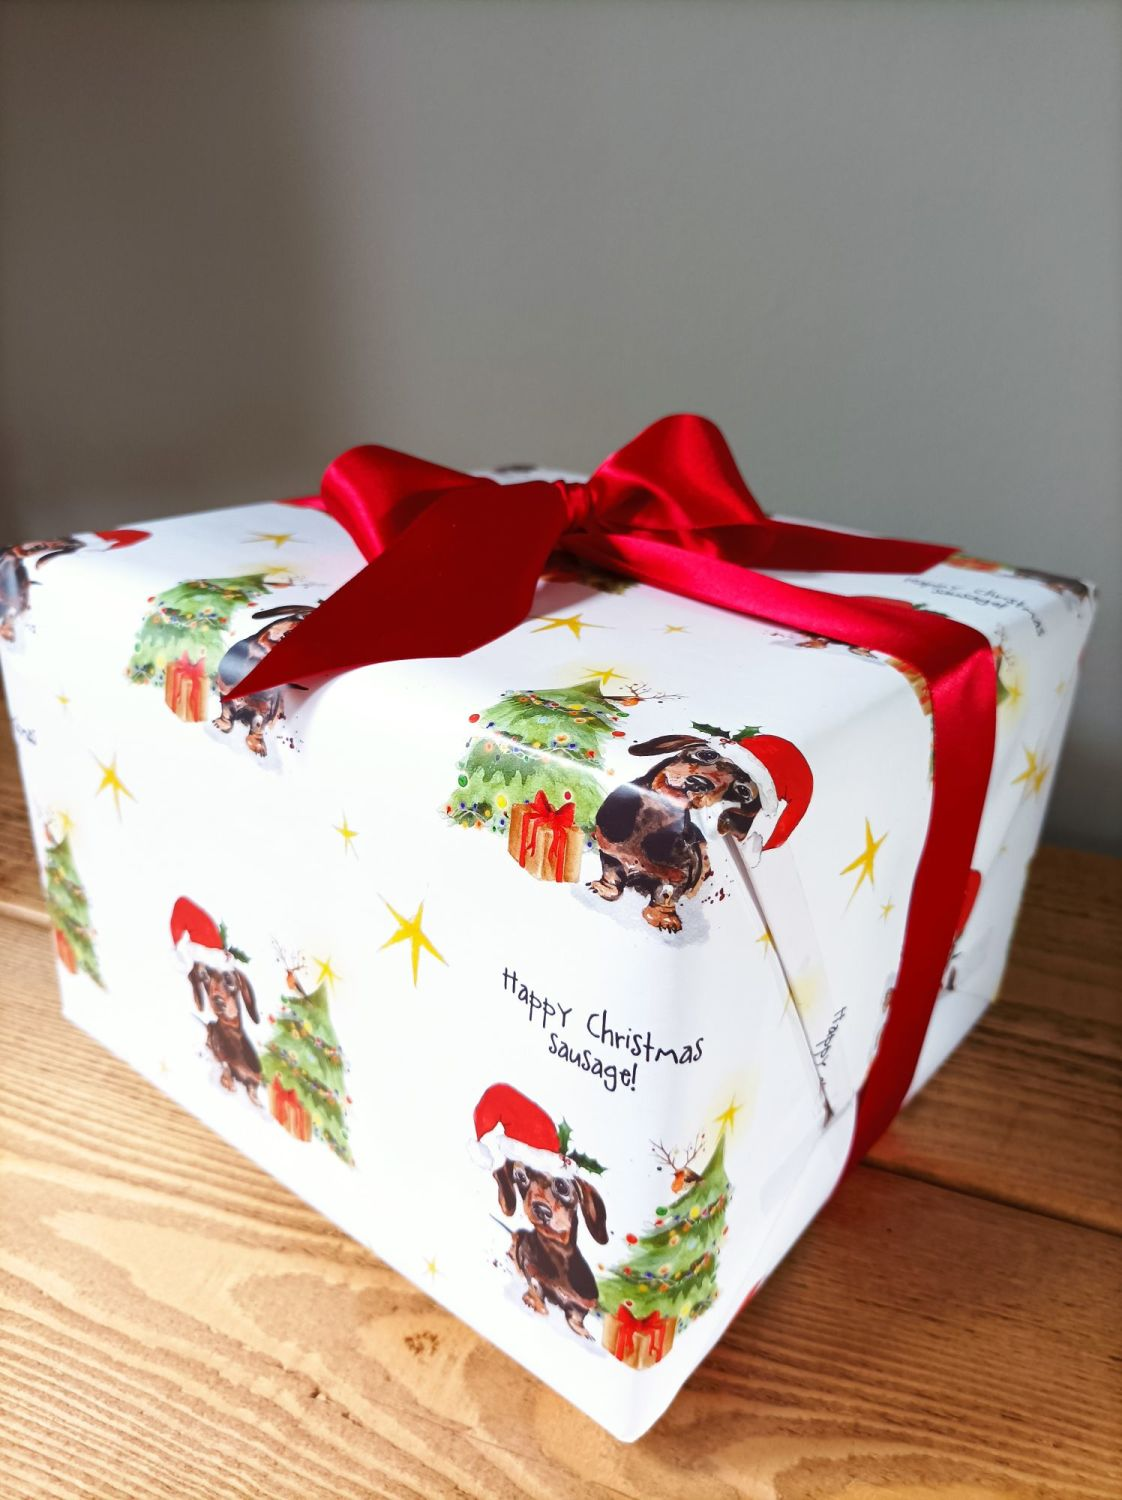 Happy Christmas sausage! - Wrapping paper